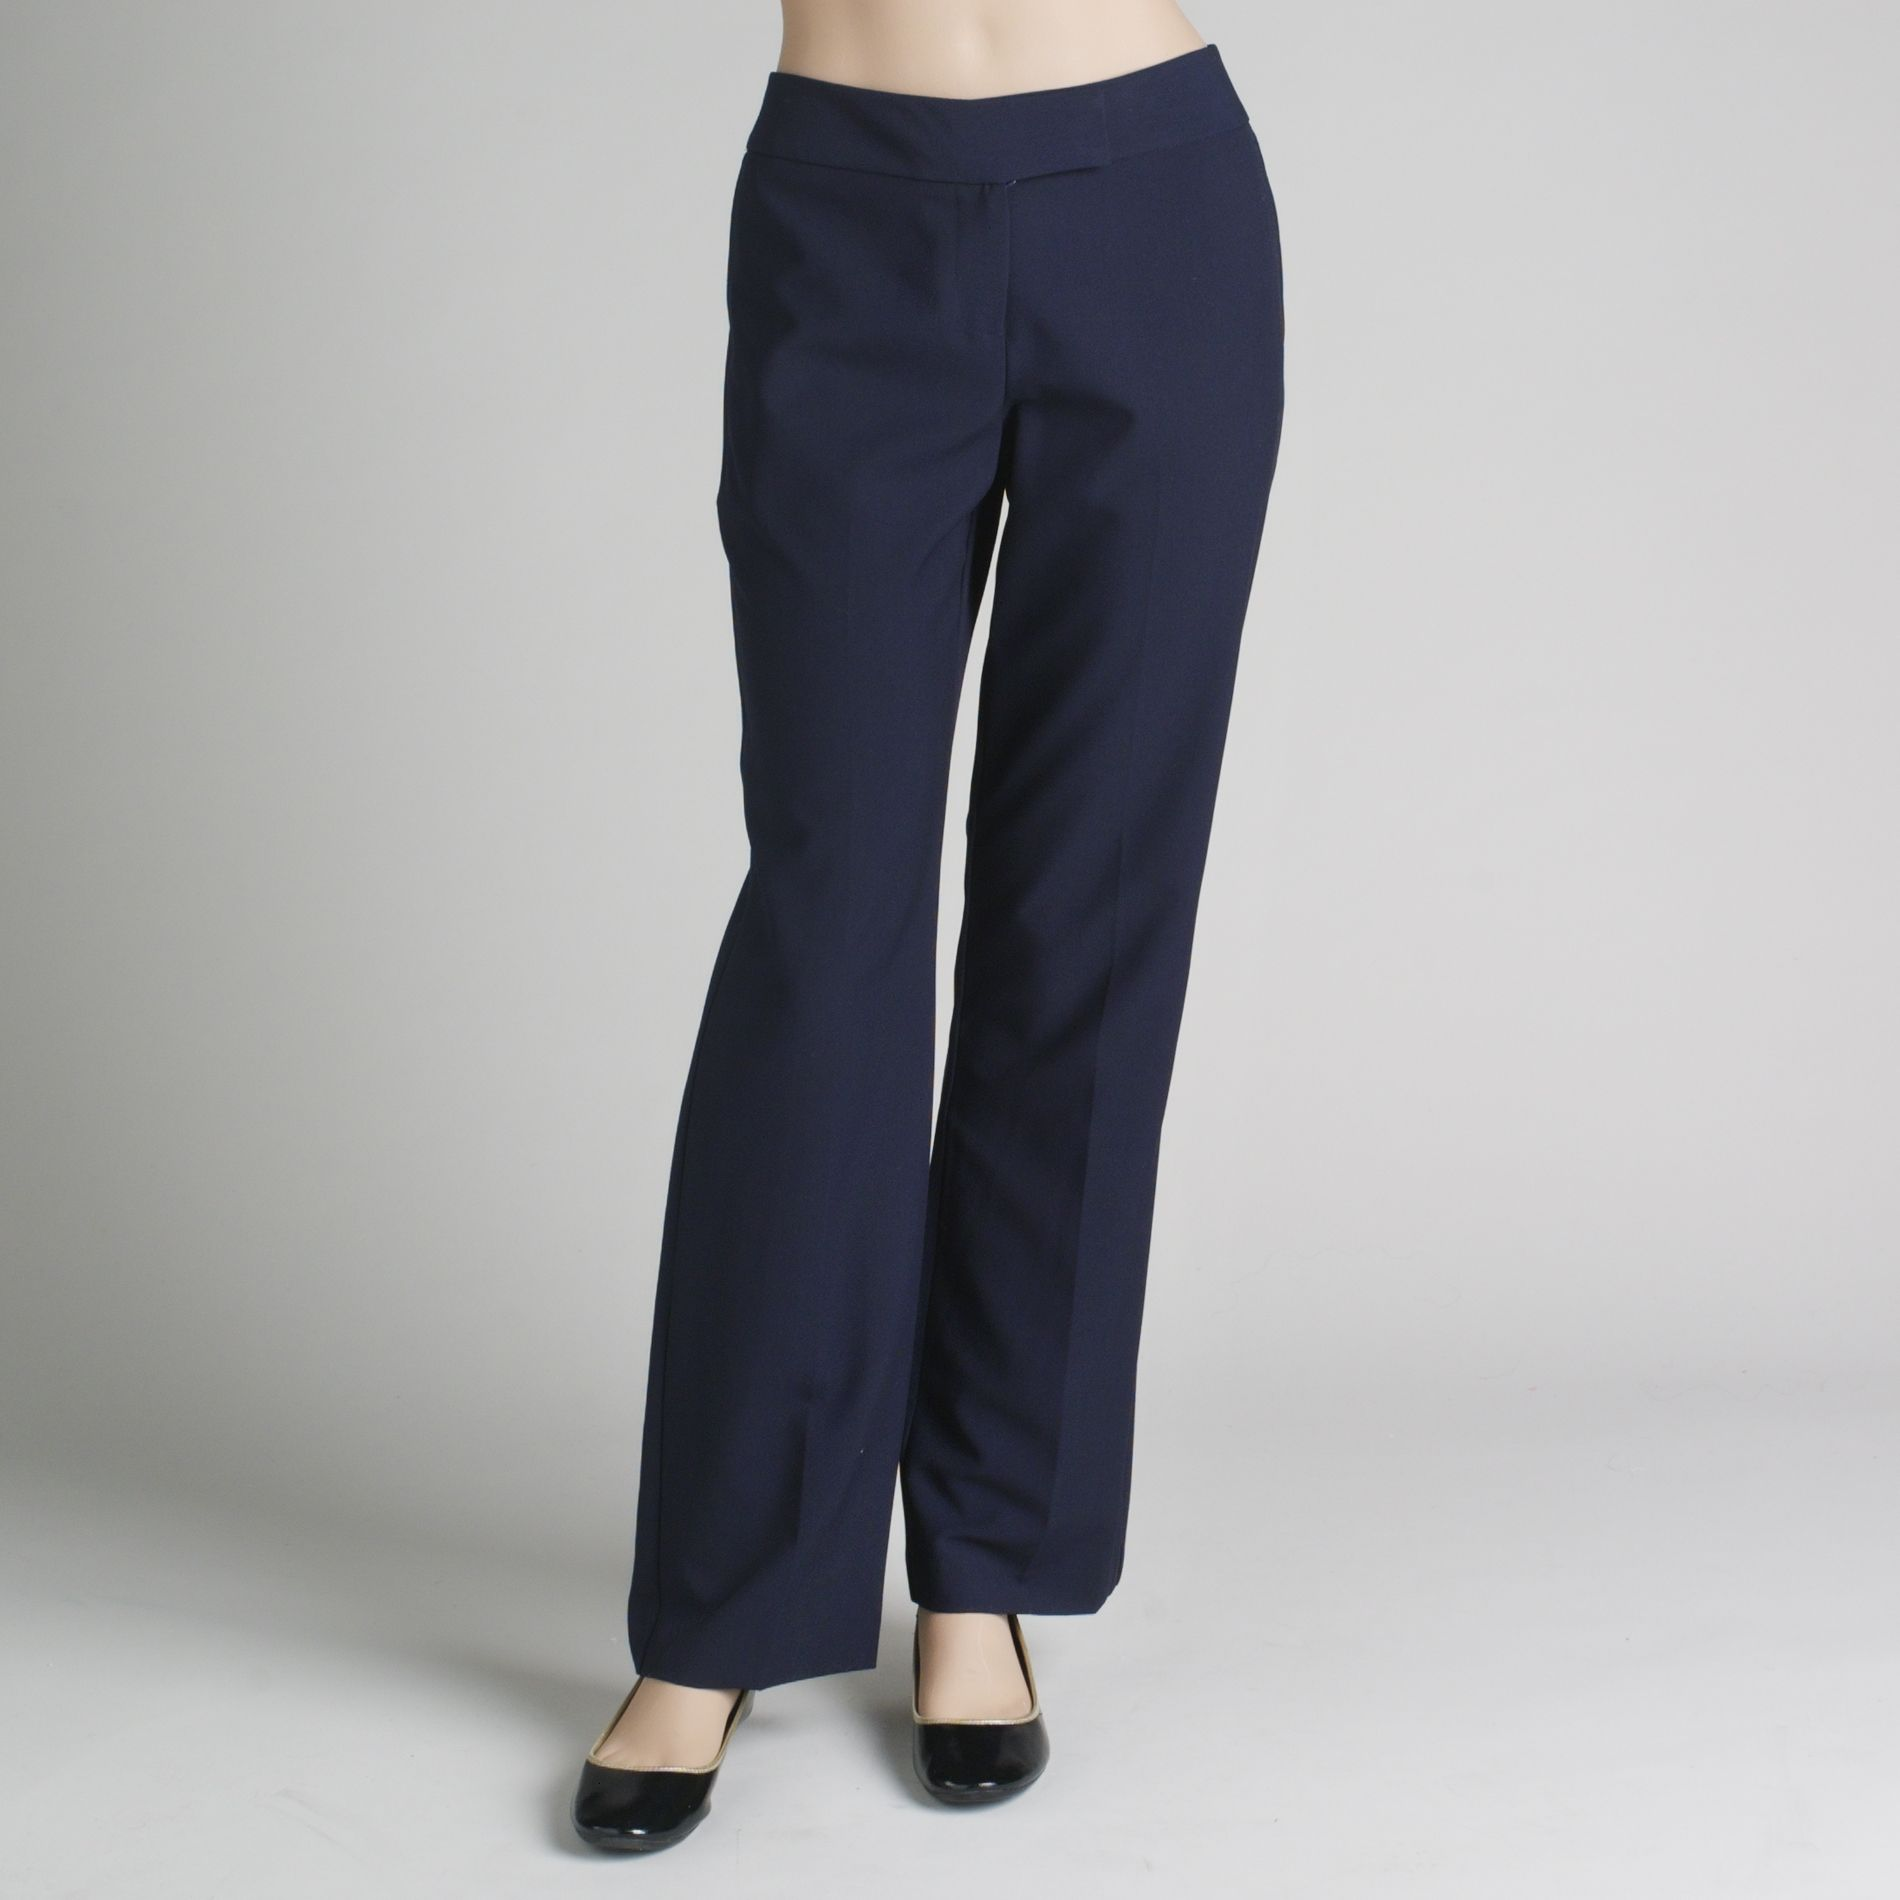 Covington Women's Slim Fit Lynda Pants at Sears.com